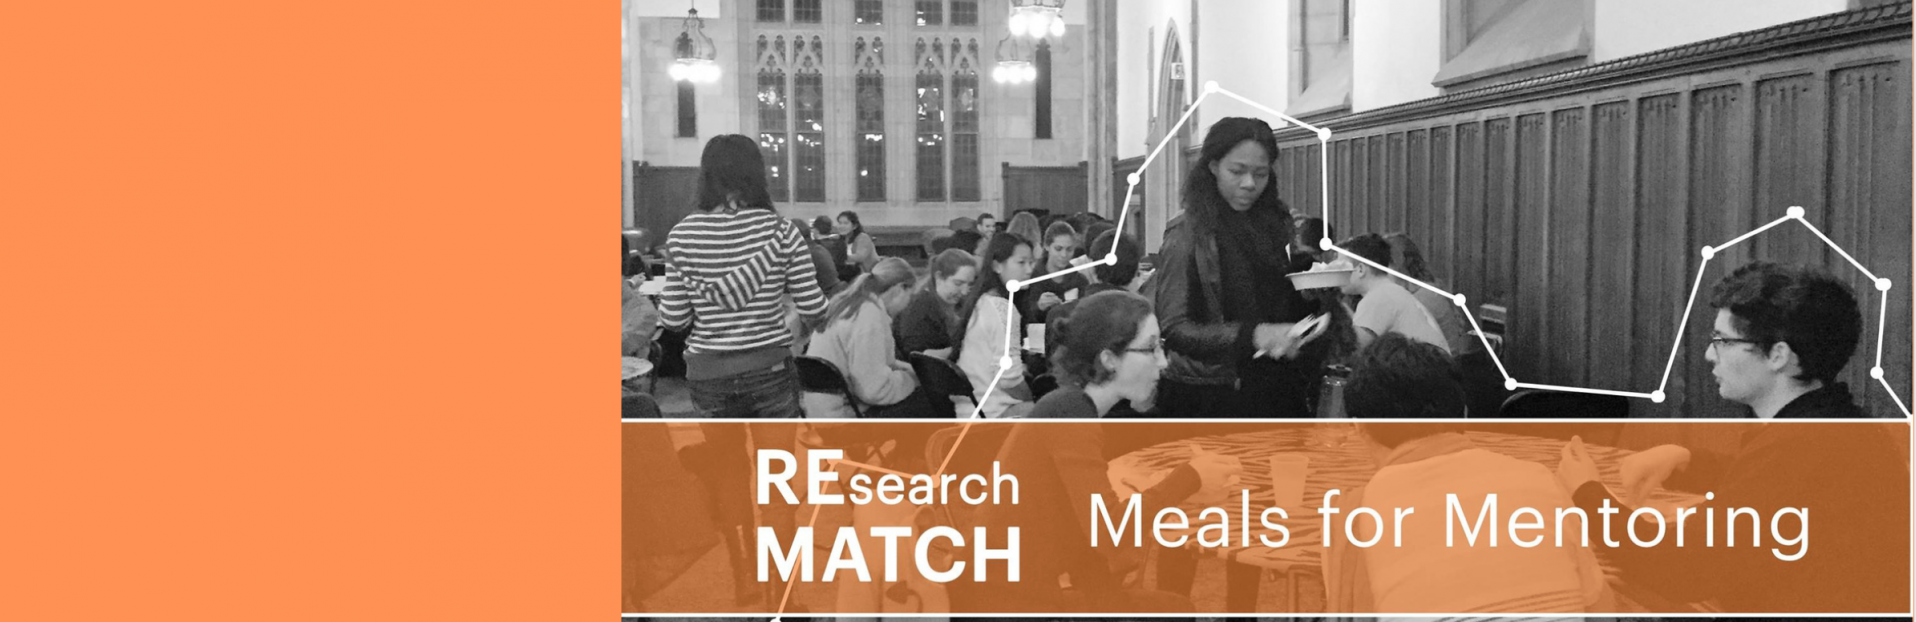 ReMatch Meals for Mentoring